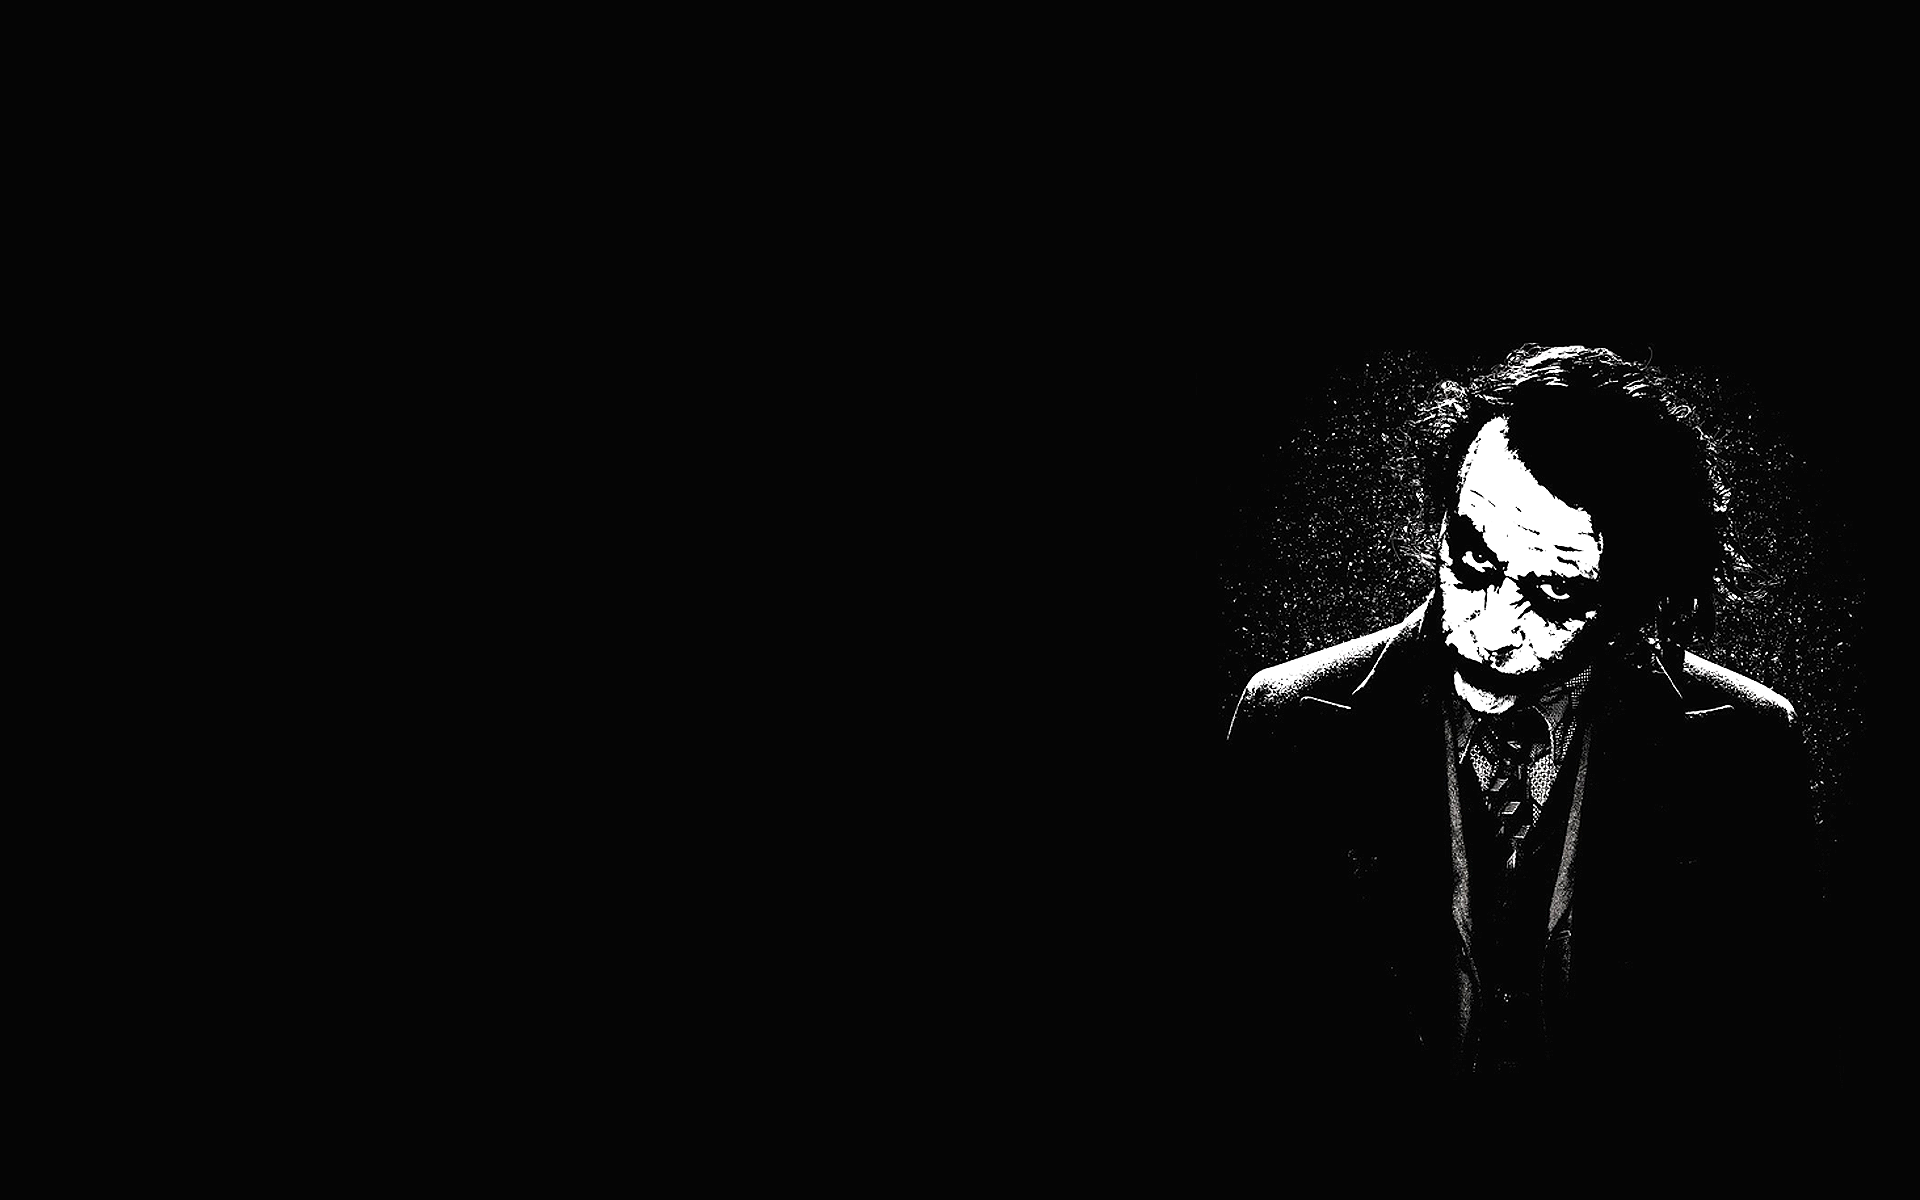 Joker Hd Wallpapers Wallpaper Cave Black Hd Wallpaper